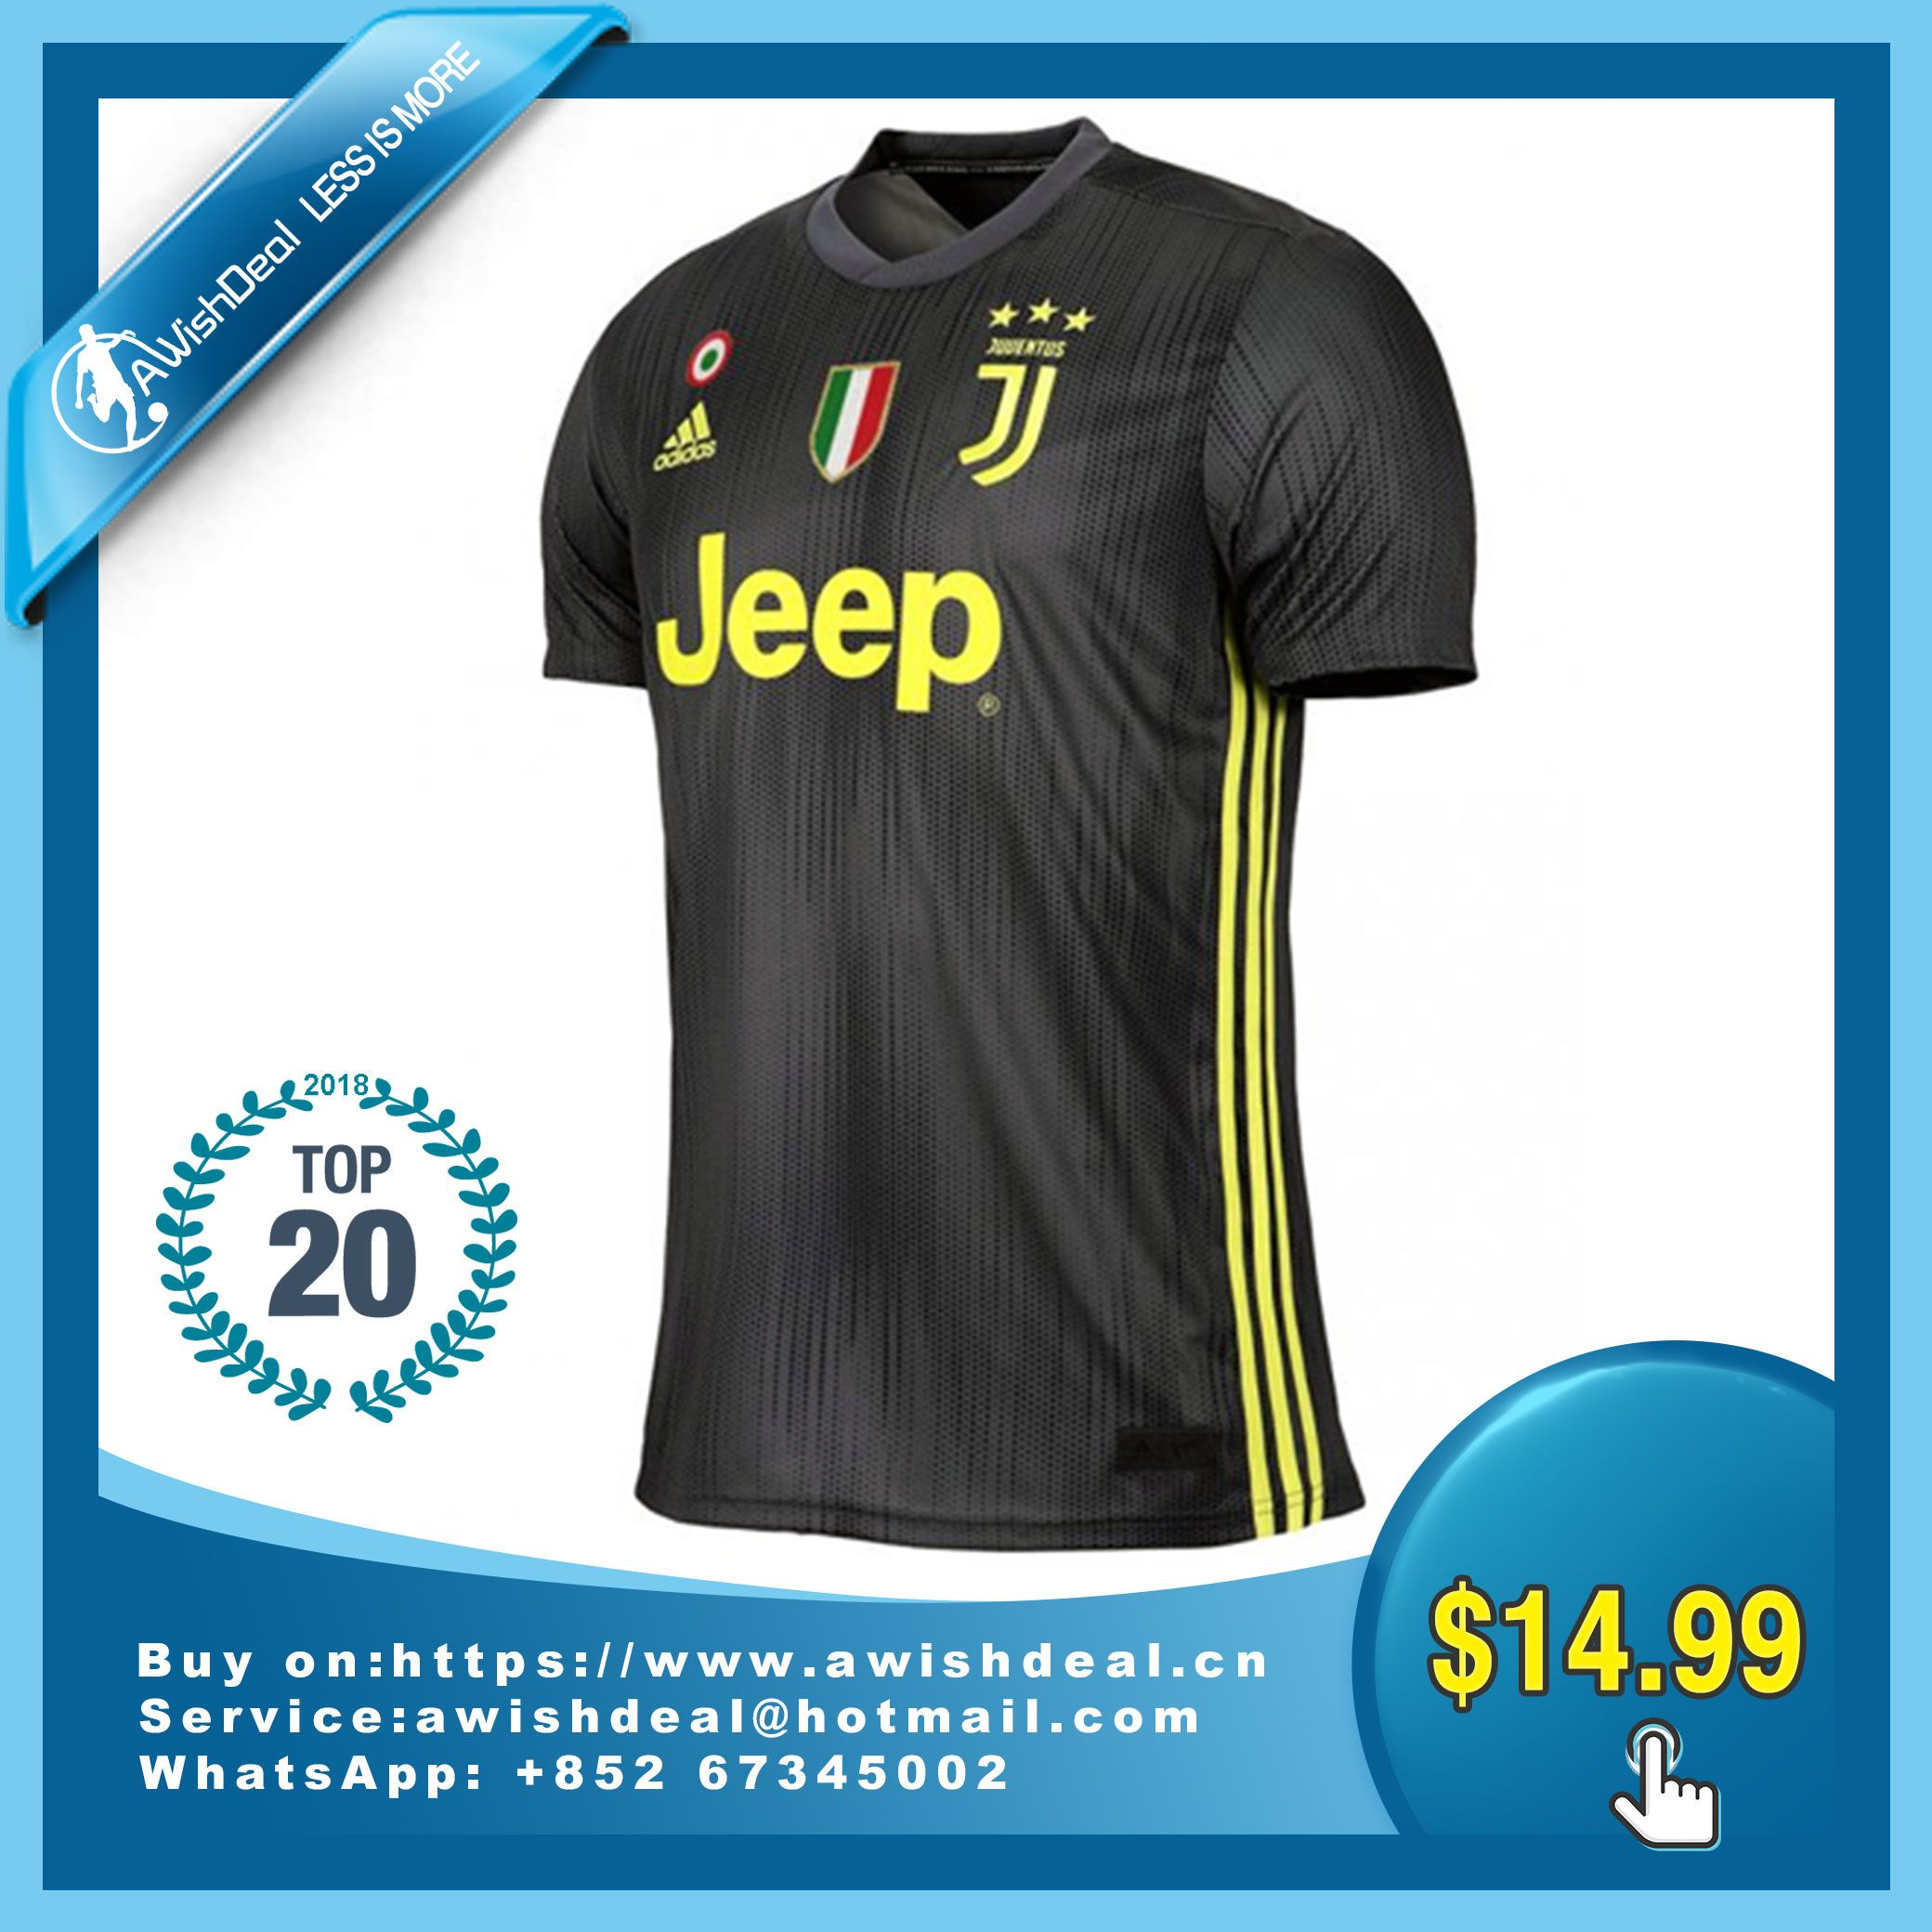 66a626d11 Click to buy 18-19 Juventus Third Away Black Soccer Jersey Shirt. For 24  hours only, take 25% OFF your total order with promo code AWISHDEAL